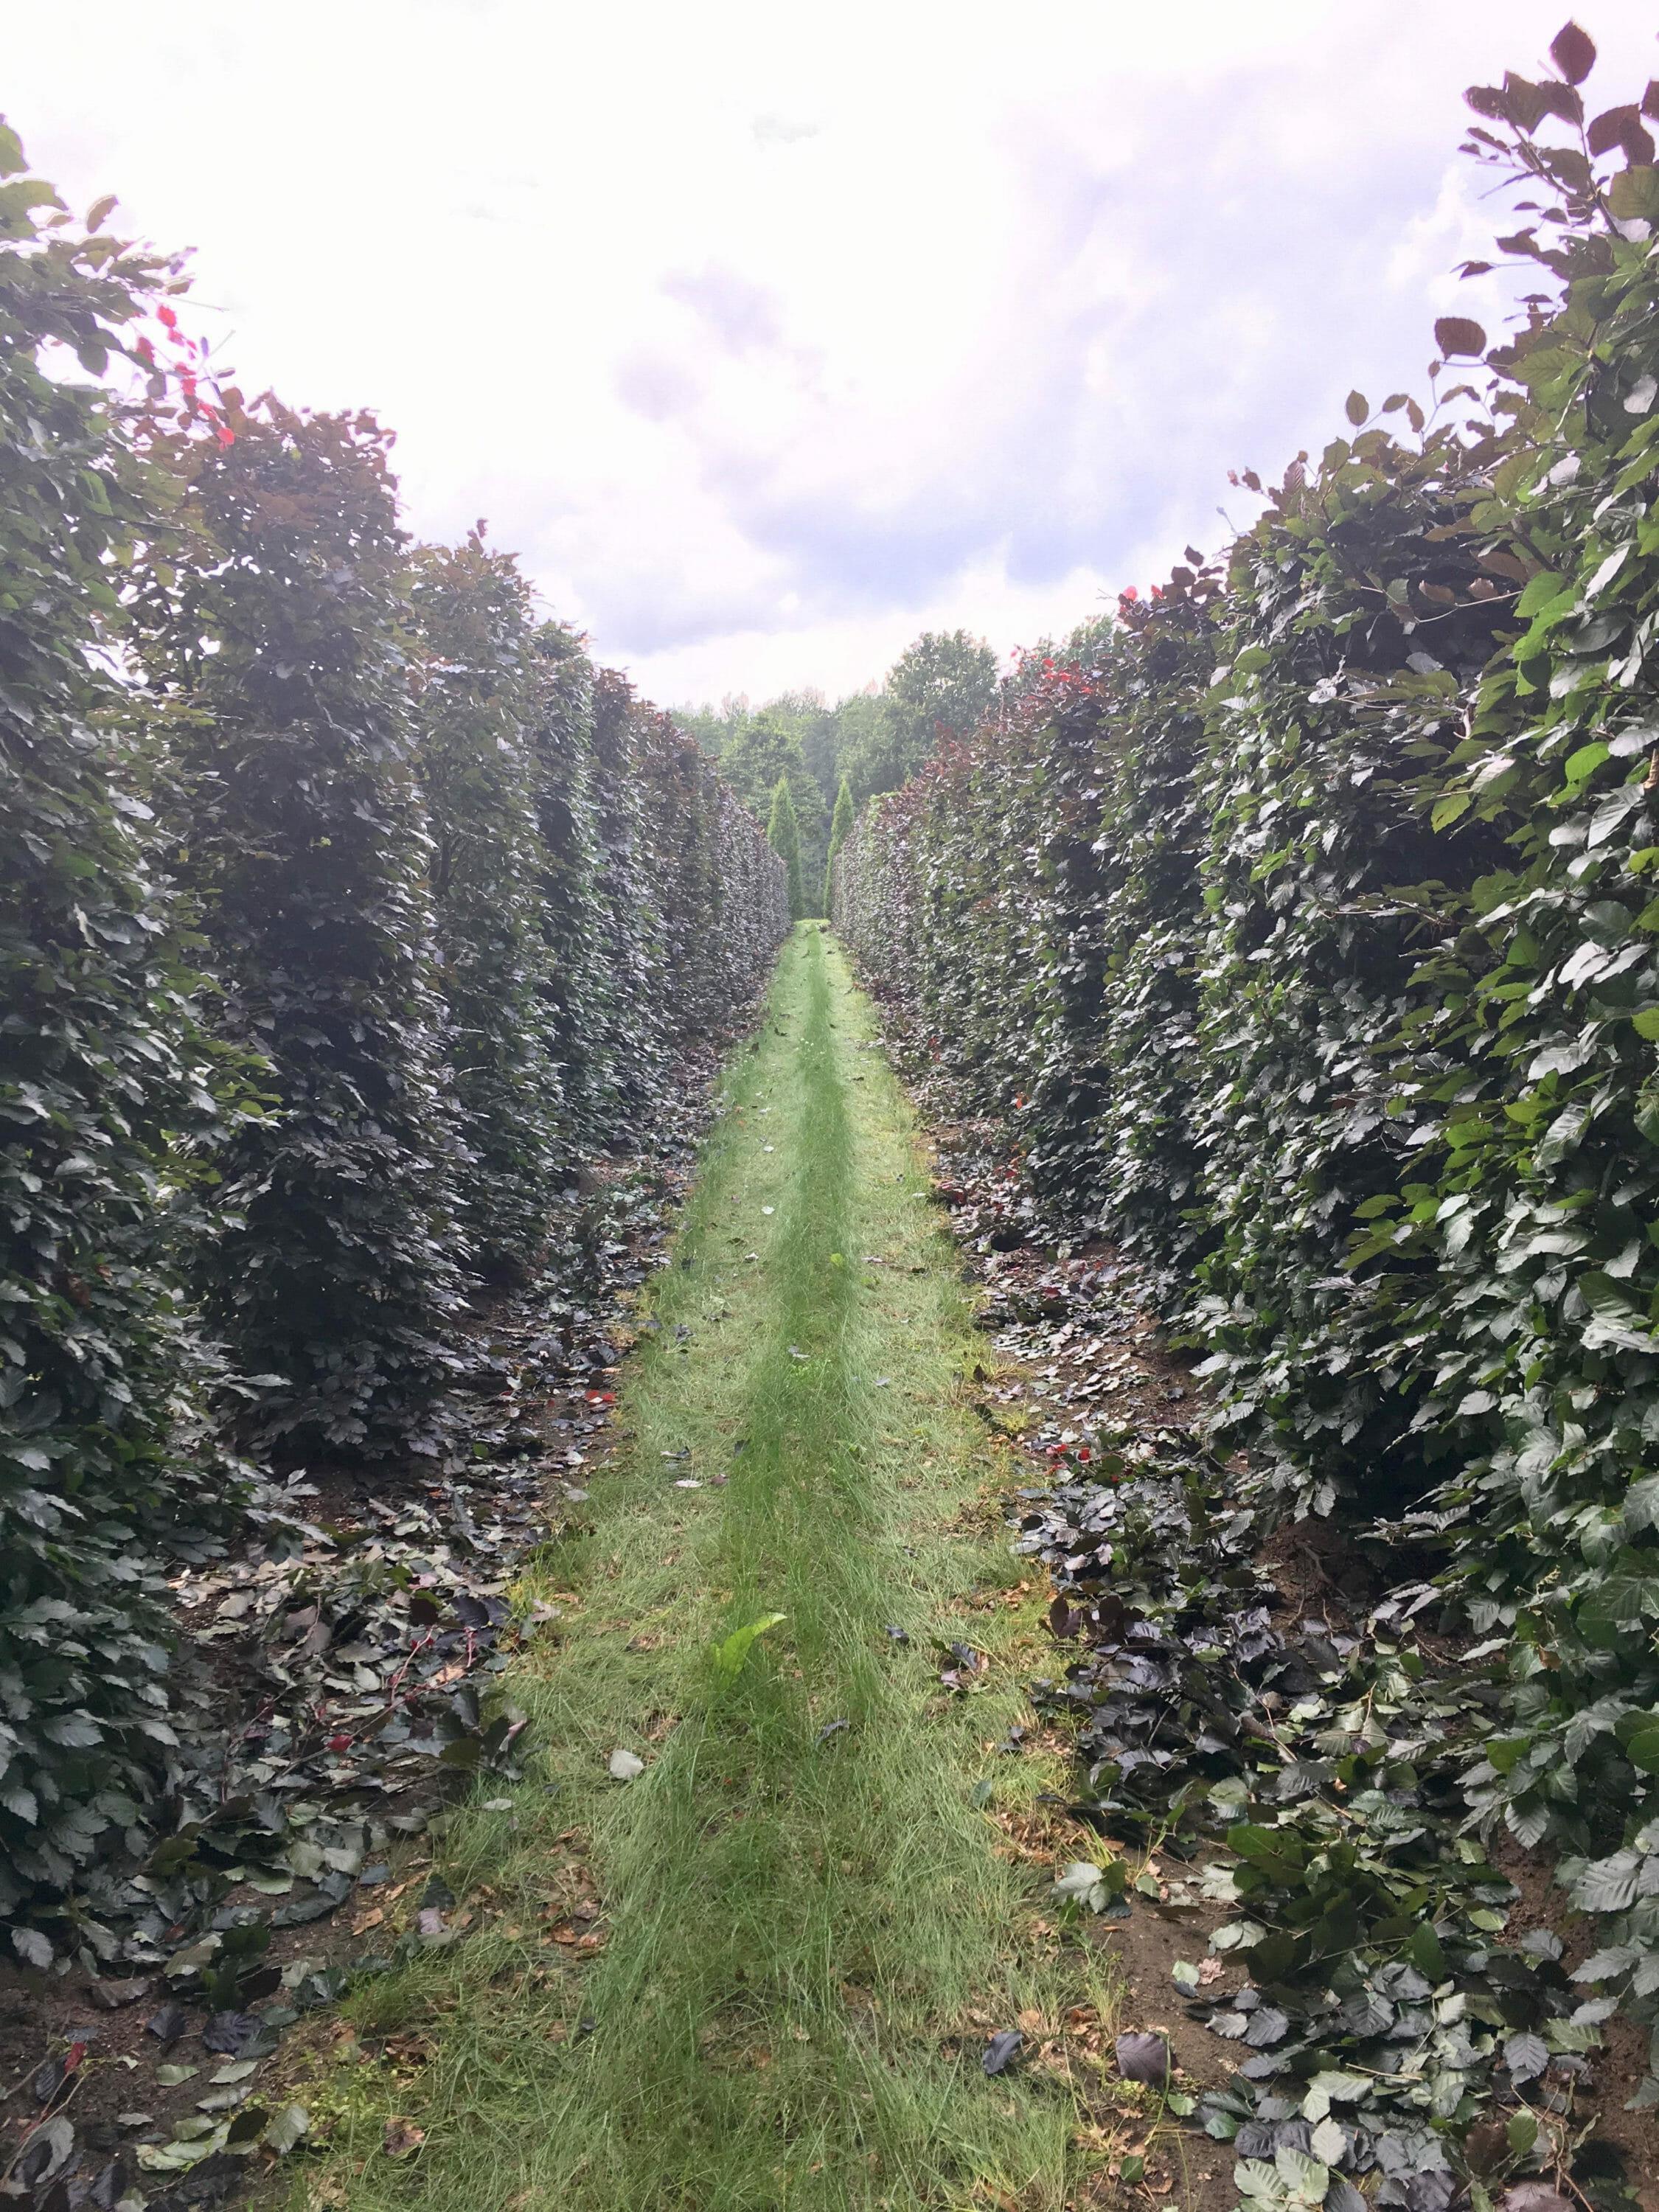 Rows of European Beech, mechanically sheered at Bruns Pflanzen in Germany